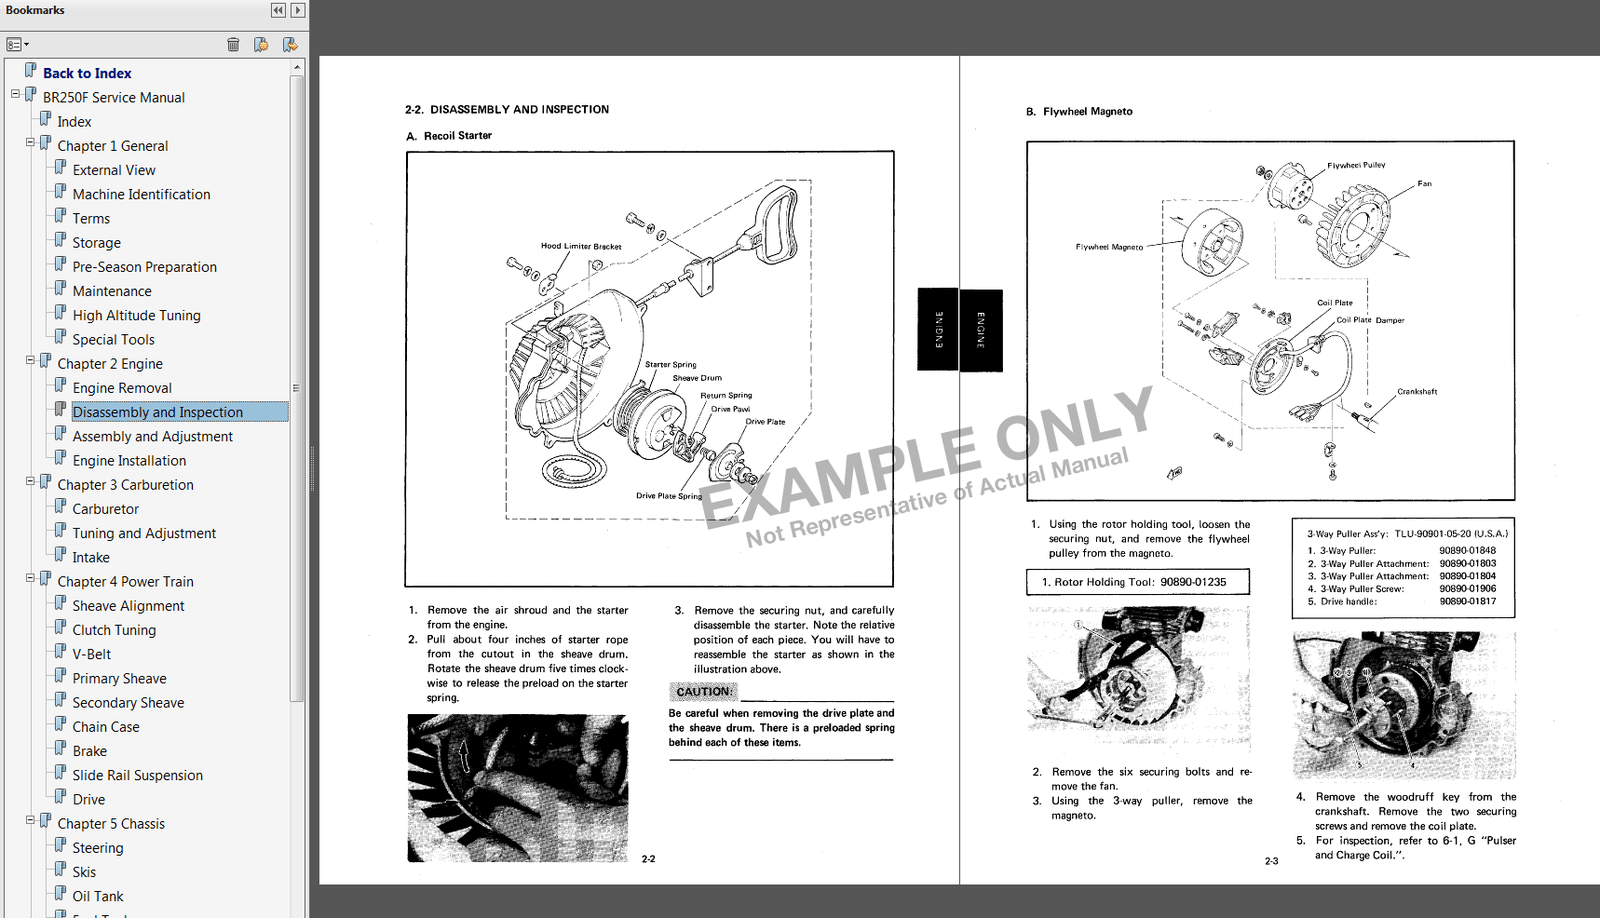 1990-1999 Yamaha Phazer II PZ480 Snowmobile Service Manual